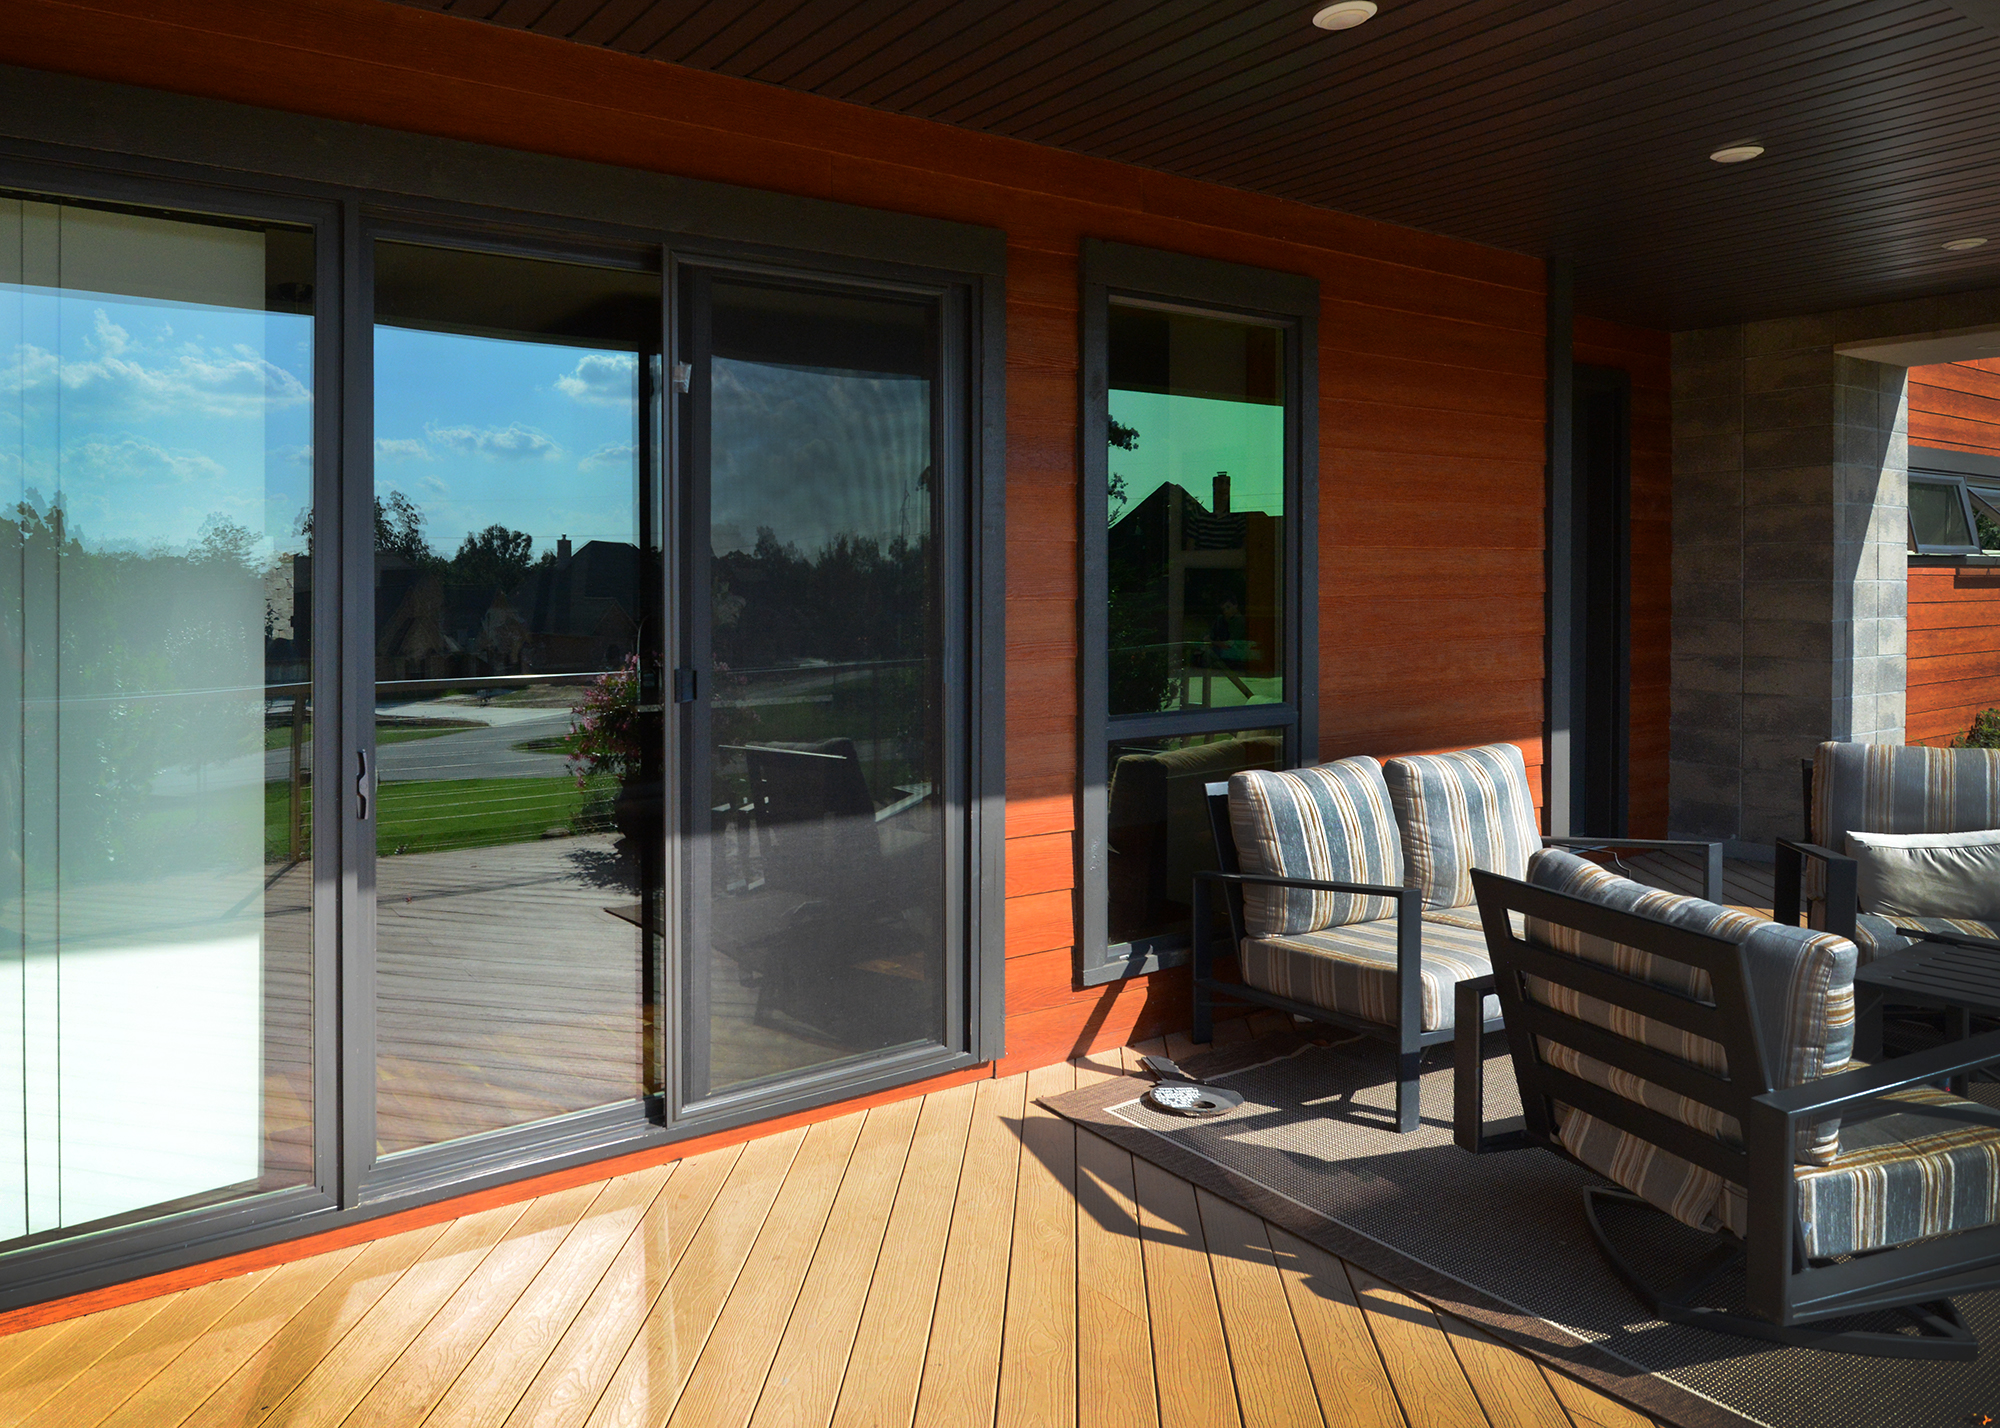 weatherbarr-Pinnacle-patio-door-exterior.jpg